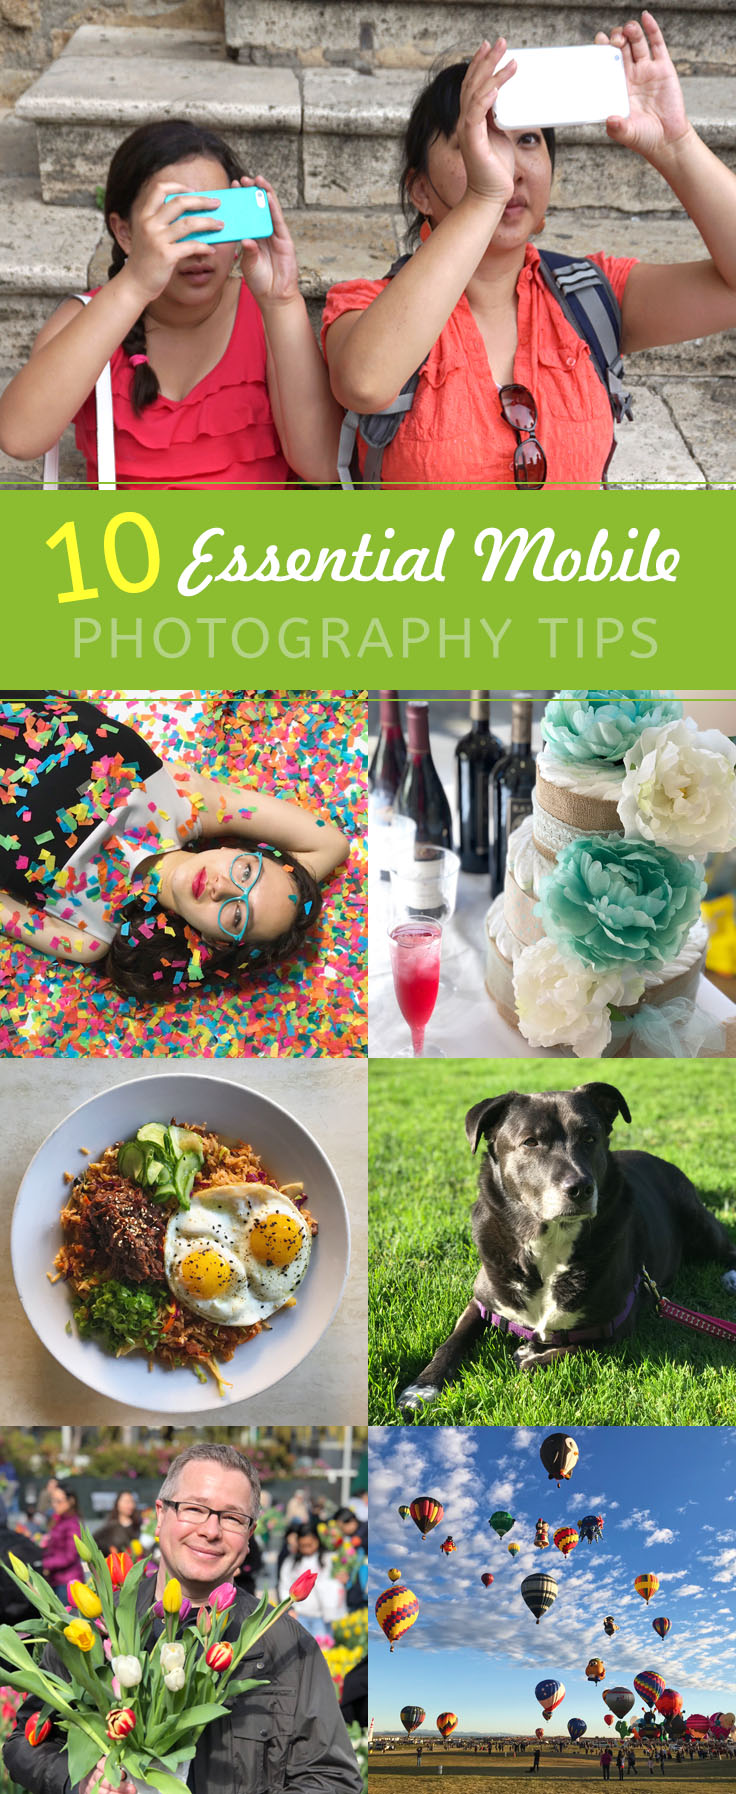 10 Mobile Photography Tips Anyone Can Use to Improve Their Photos for smartphones or cameras - beginner / amateur